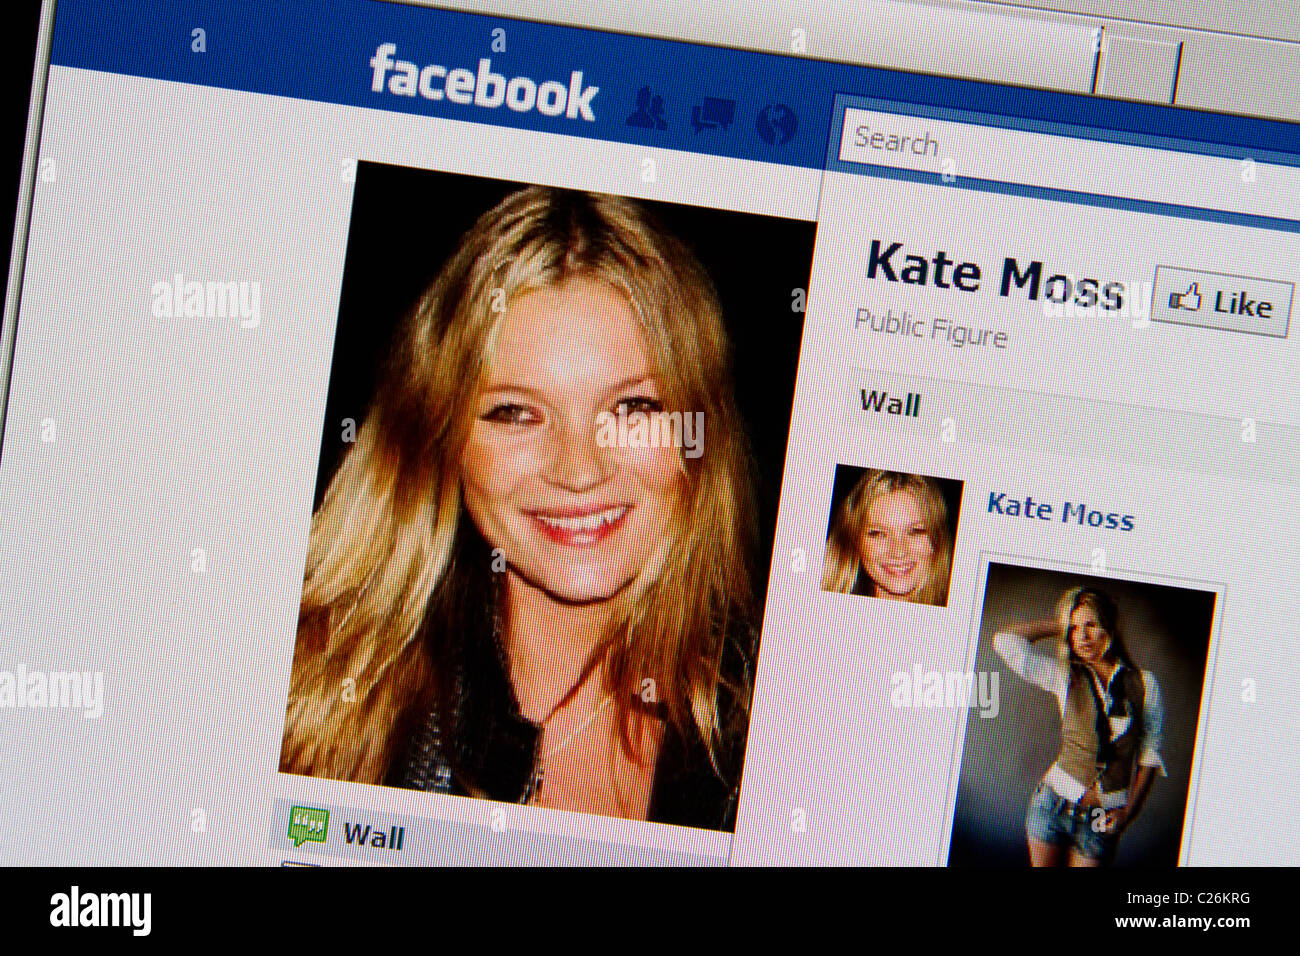 Kate Moss-Facebook-fanpage Stockbild